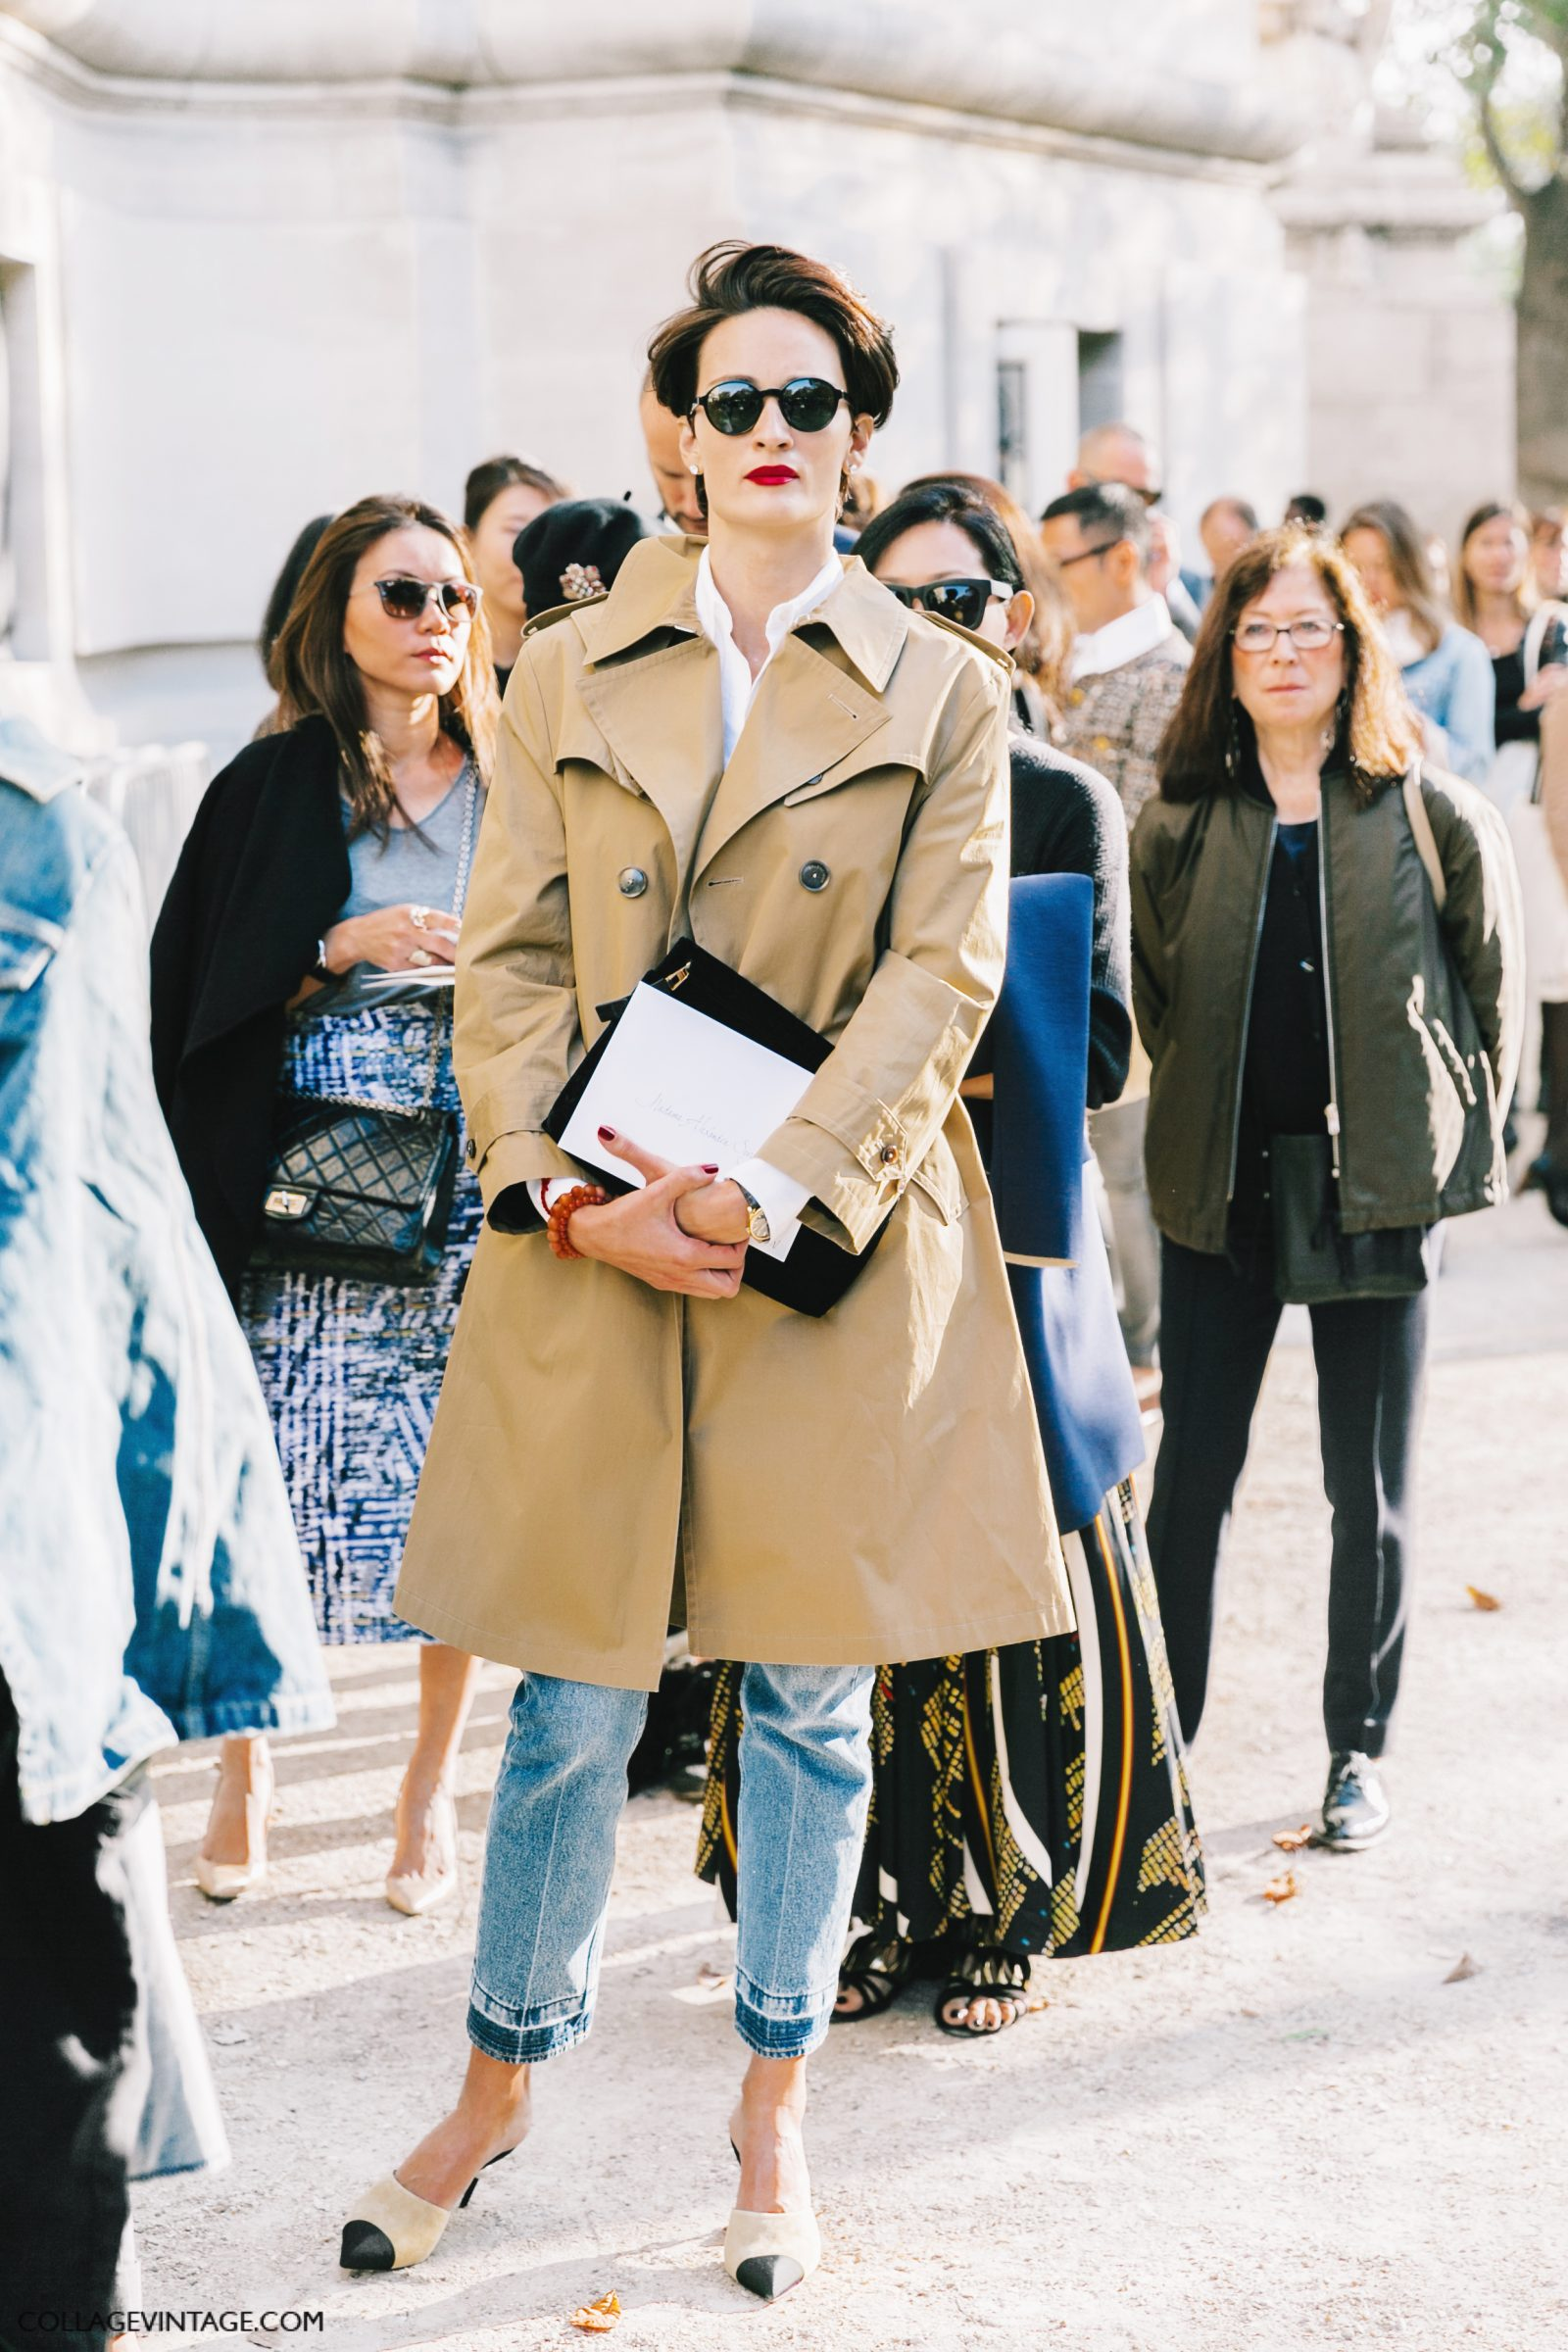 pfw-paris_fashion_week_ss17-street_style-outfits-collage_vintage-chanel-ellery-5